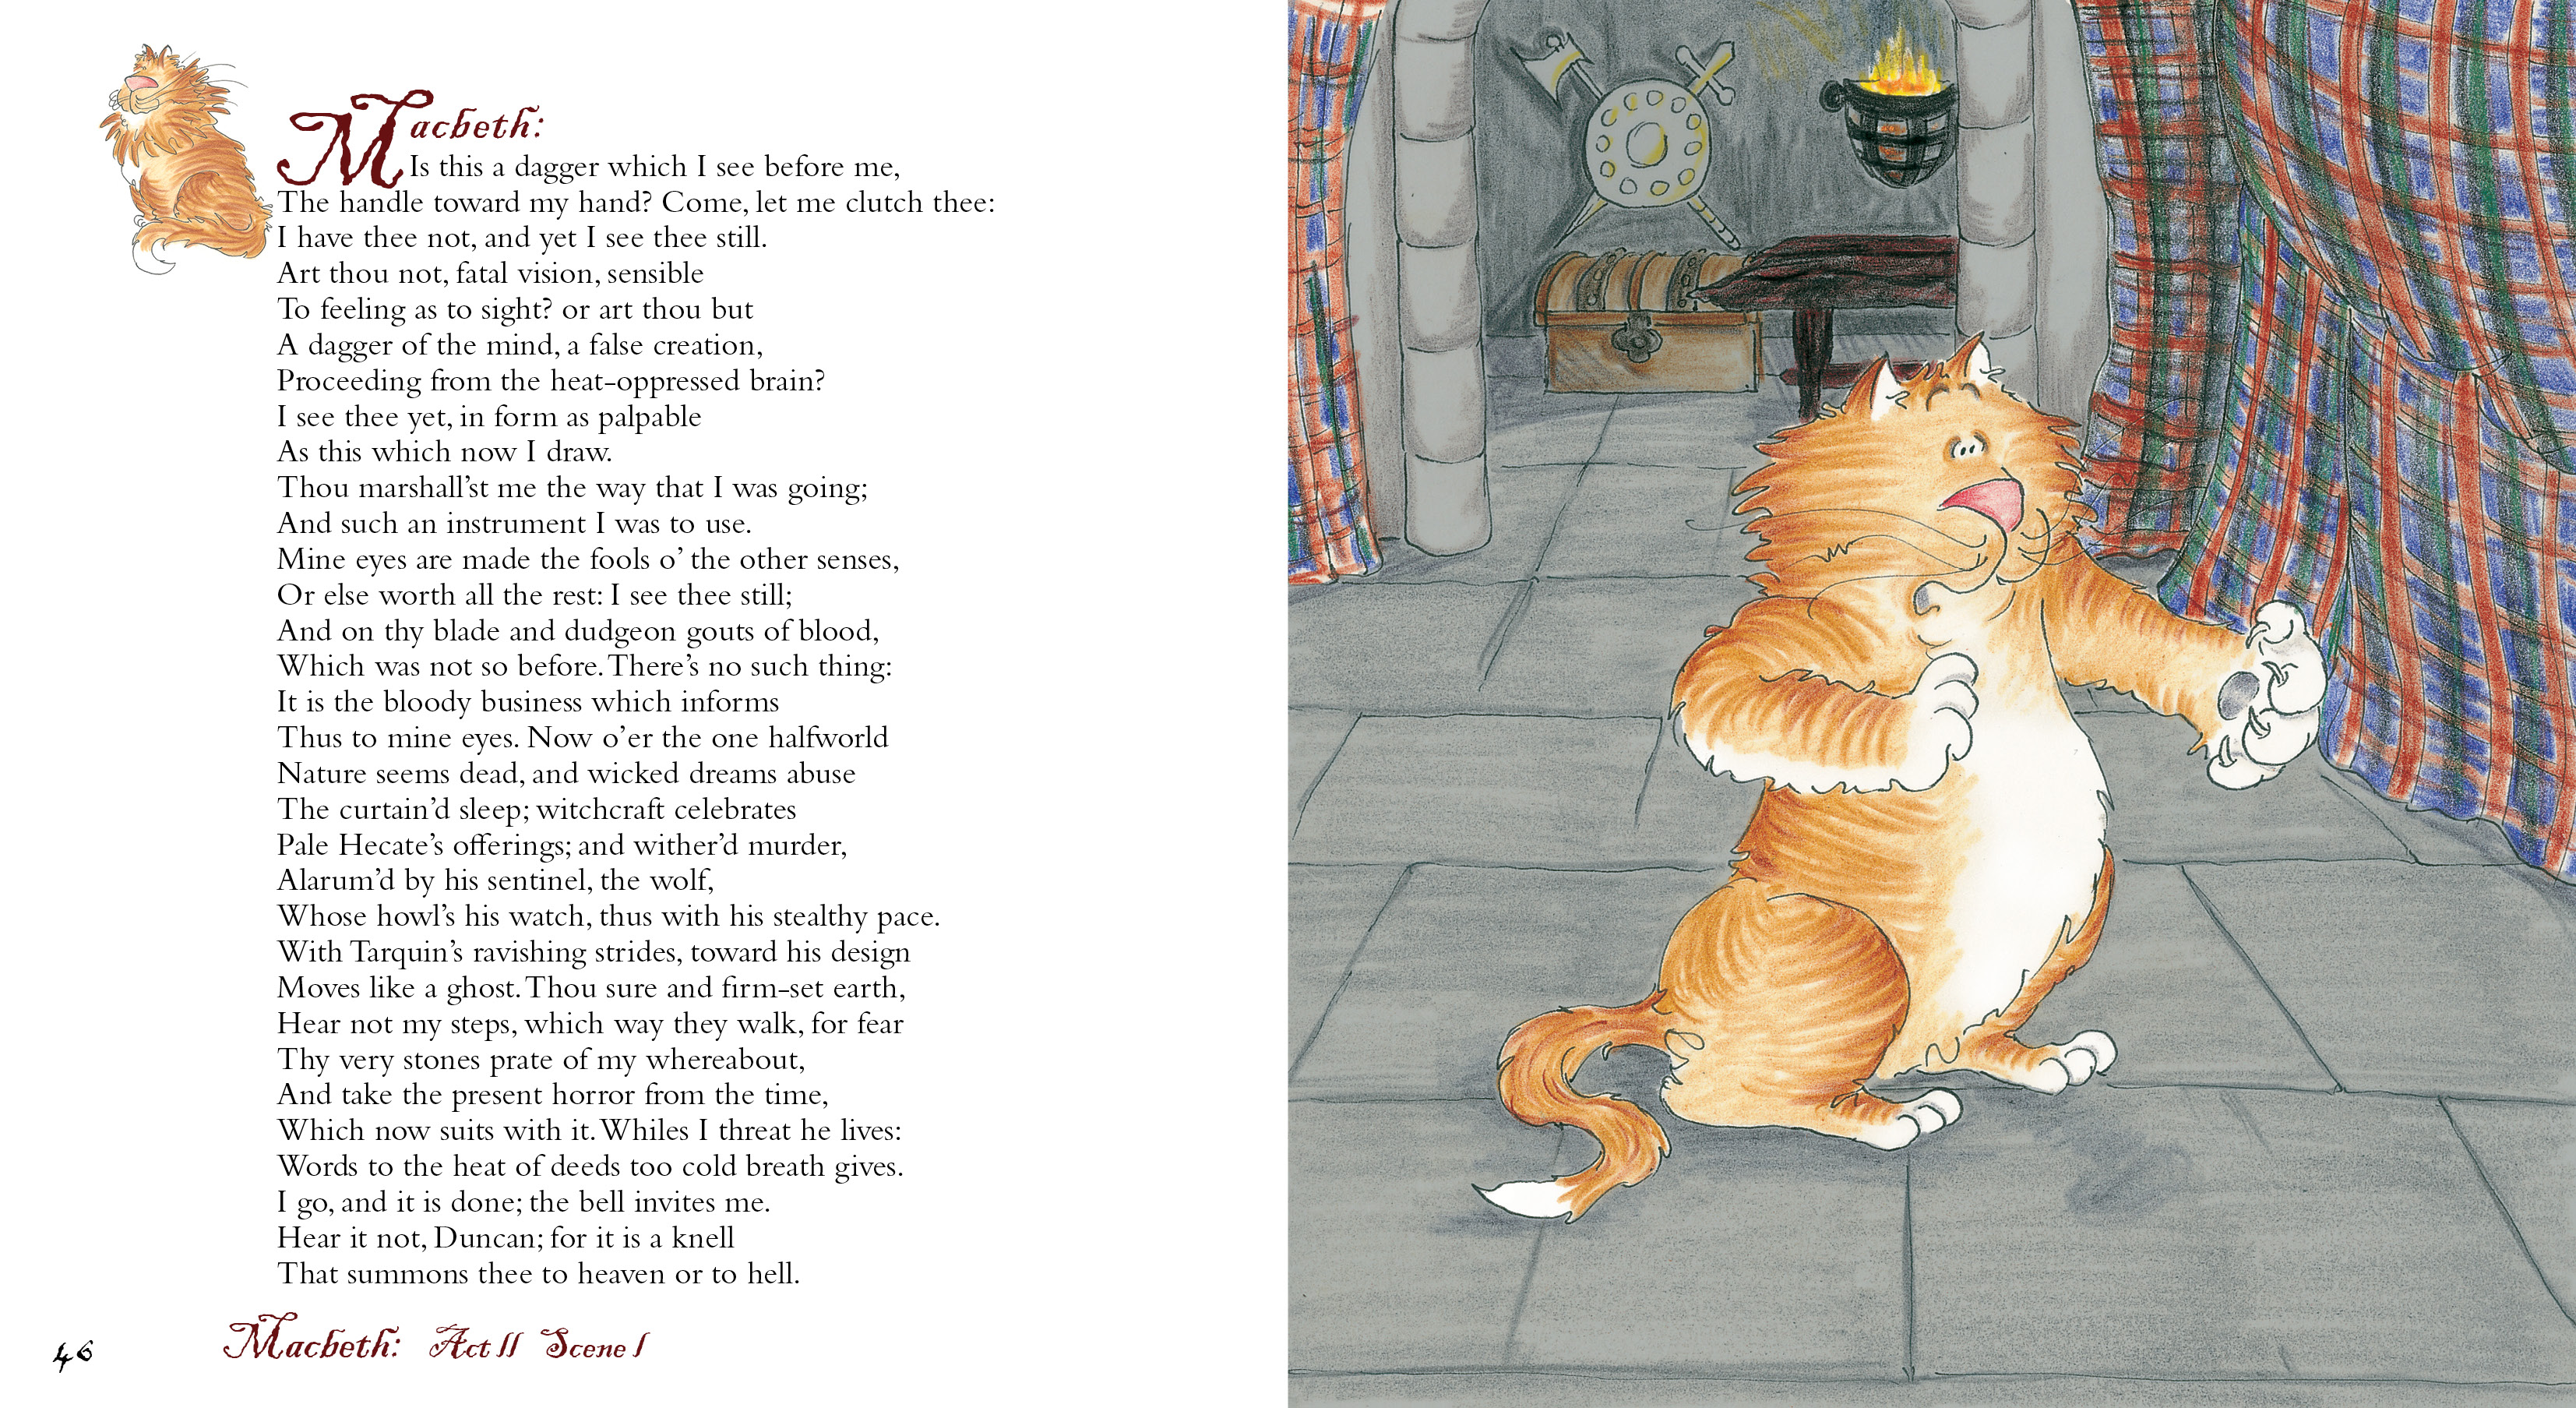 Cats' Tales from Shakespeare